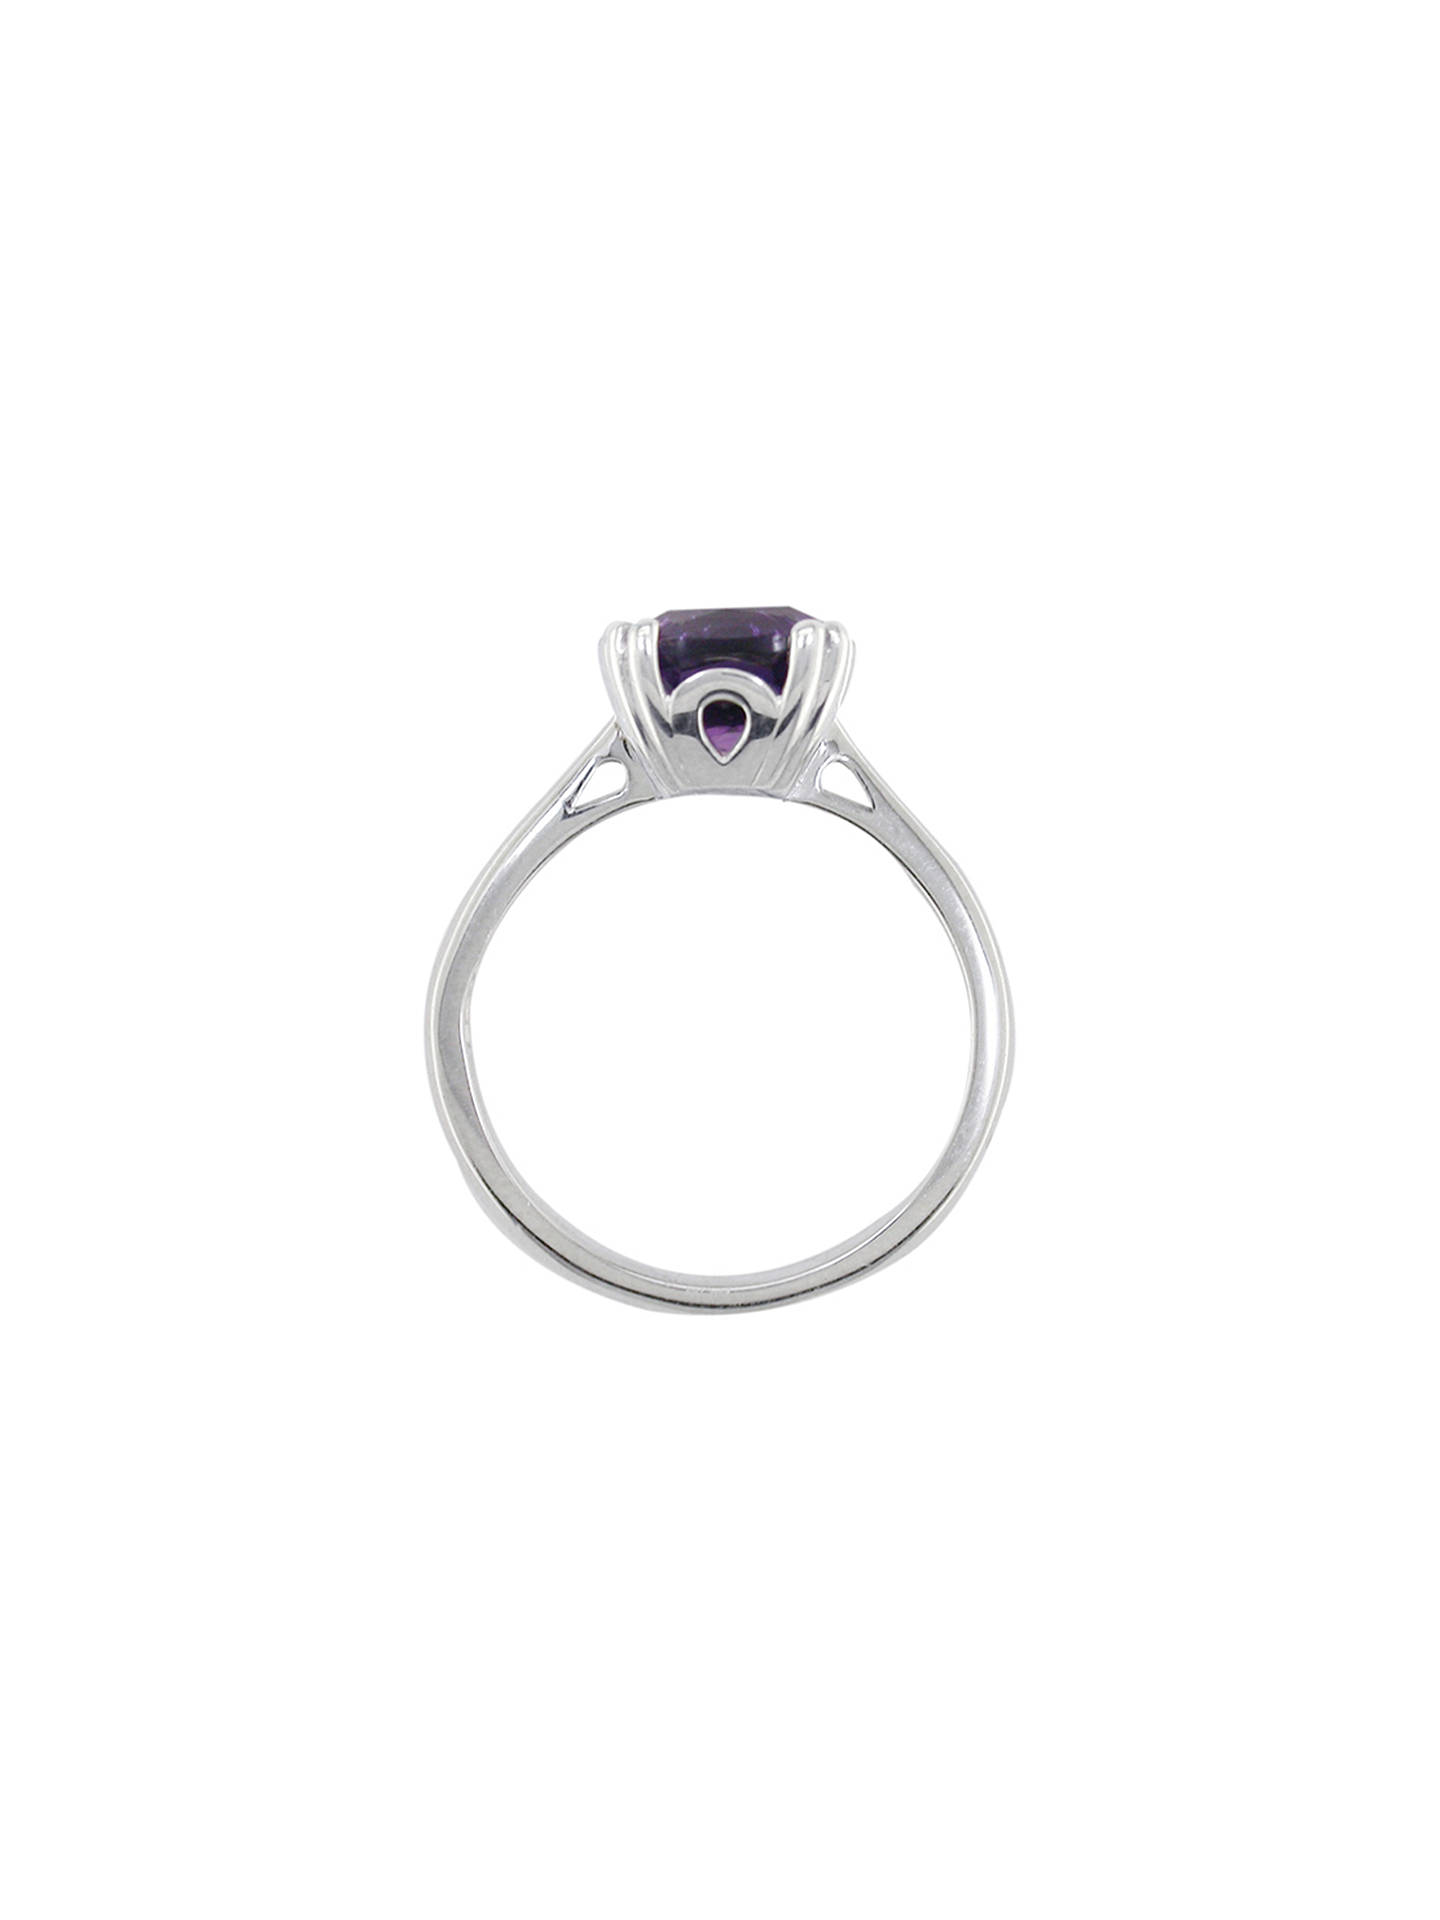 BuyEWA 9ct Gold Cushion Cocktail Ring, M, Amethyst Online at johnlewis.com